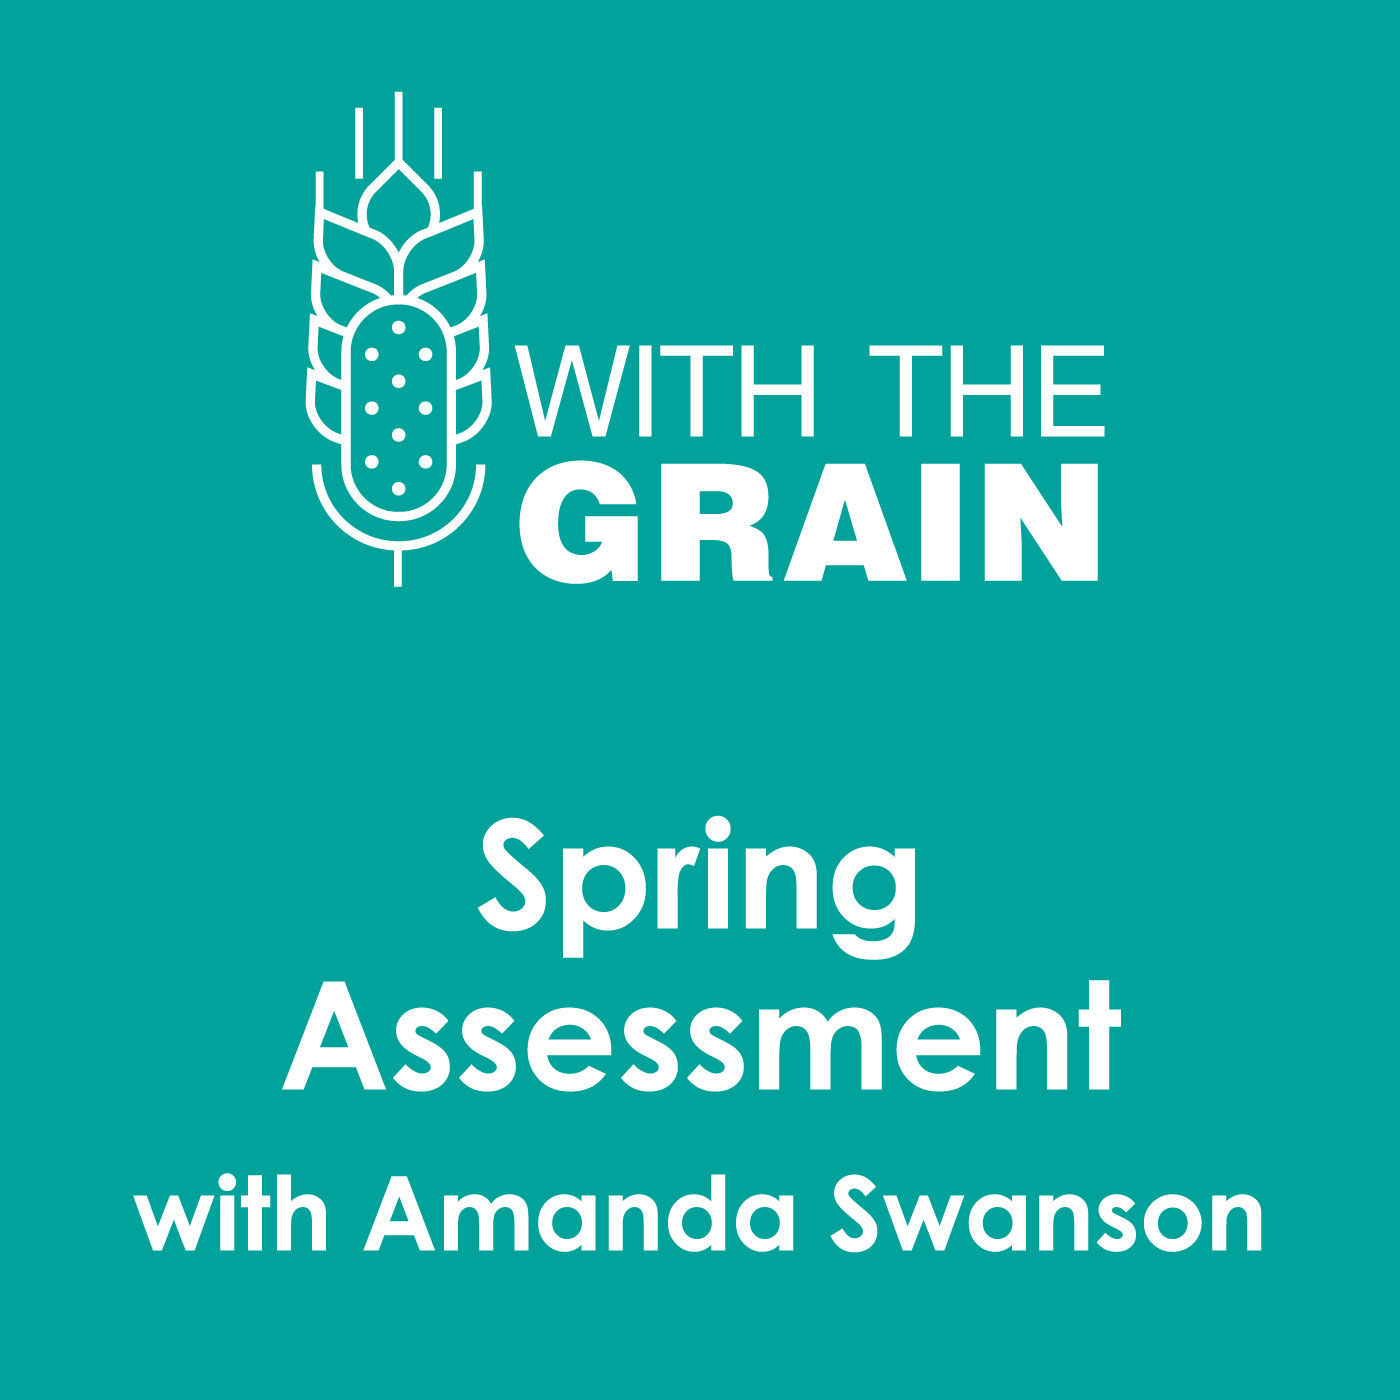 Spring Assessment, with Amanda Swanson